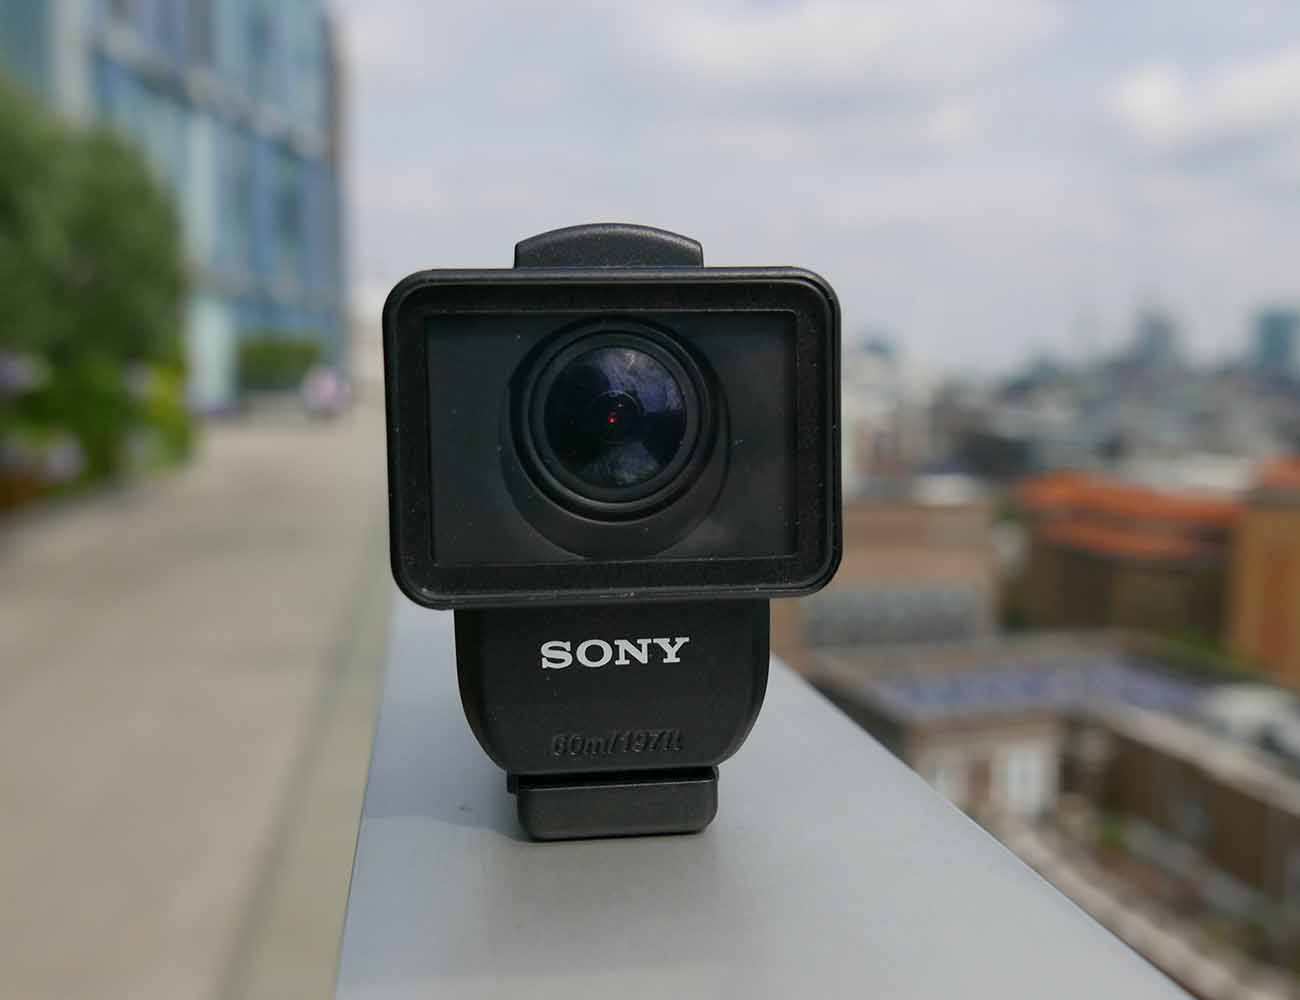 sony hdras50 b full hd action cam gadget flow. Black Bedroom Furniture Sets. Home Design Ideas